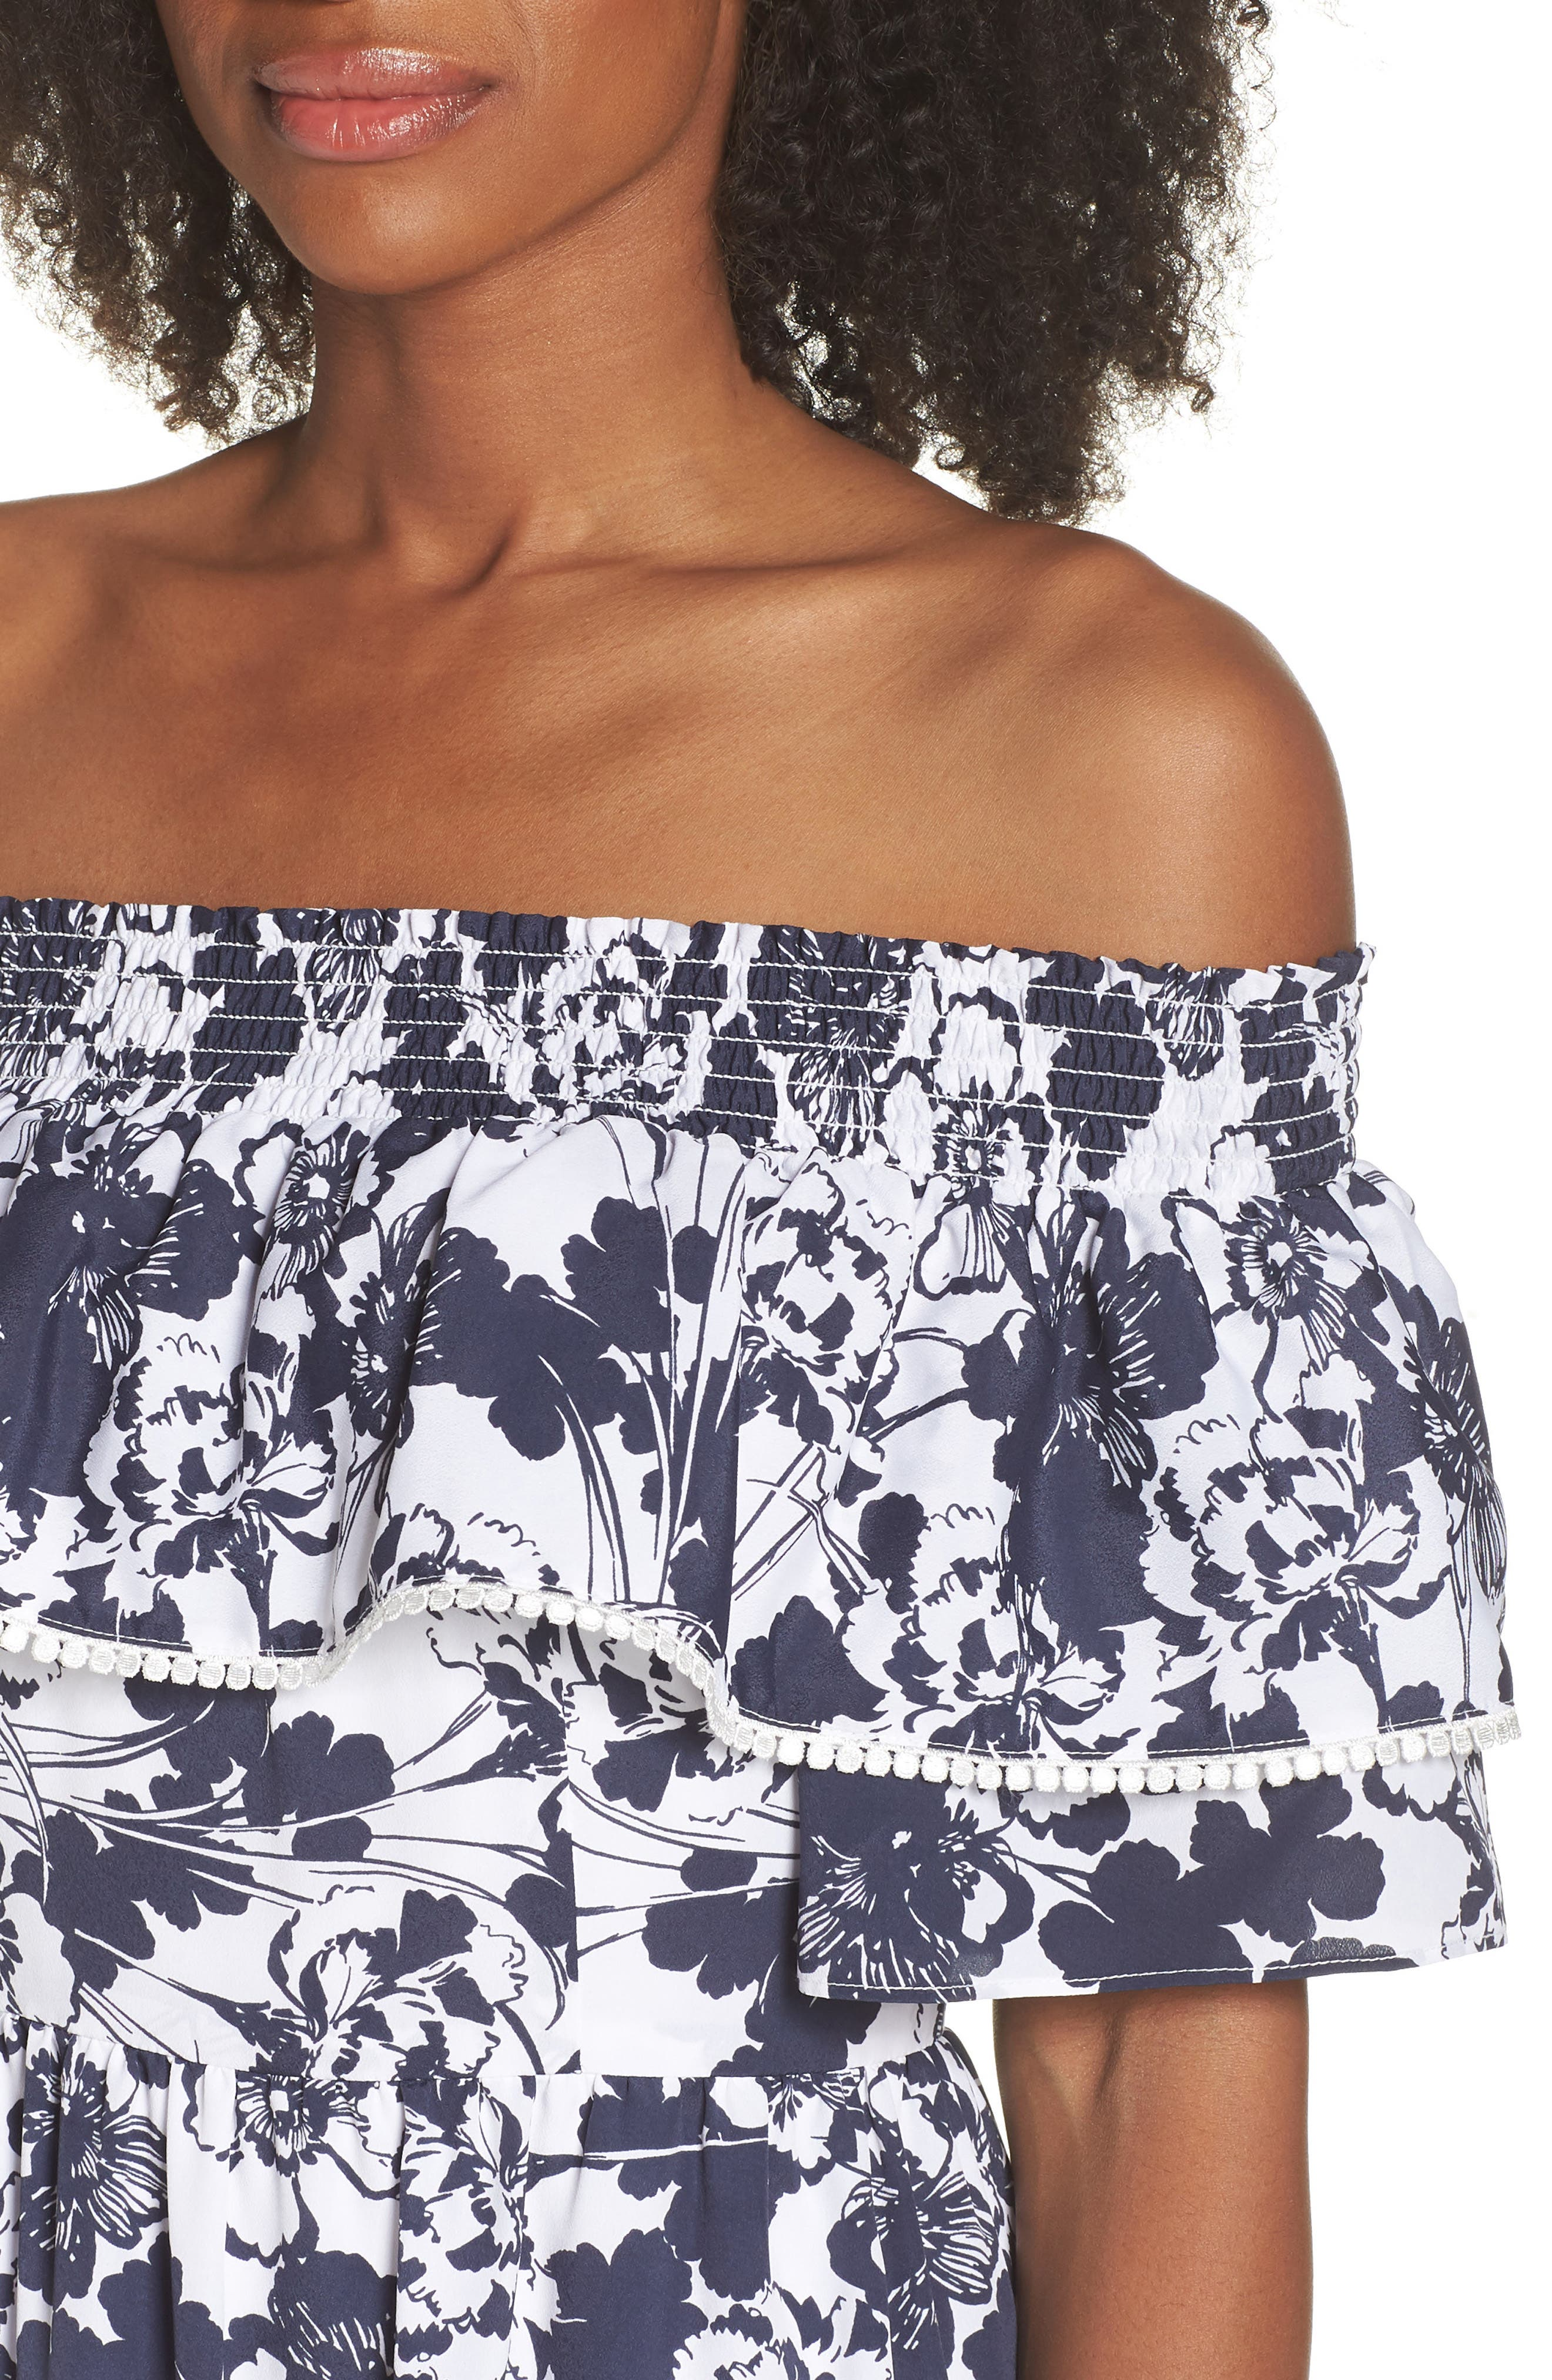 Off the Shoulder Ruffle Maxi Dress,                             Alternate thumbnail 6, color,                             Navy Ivory Floral Print